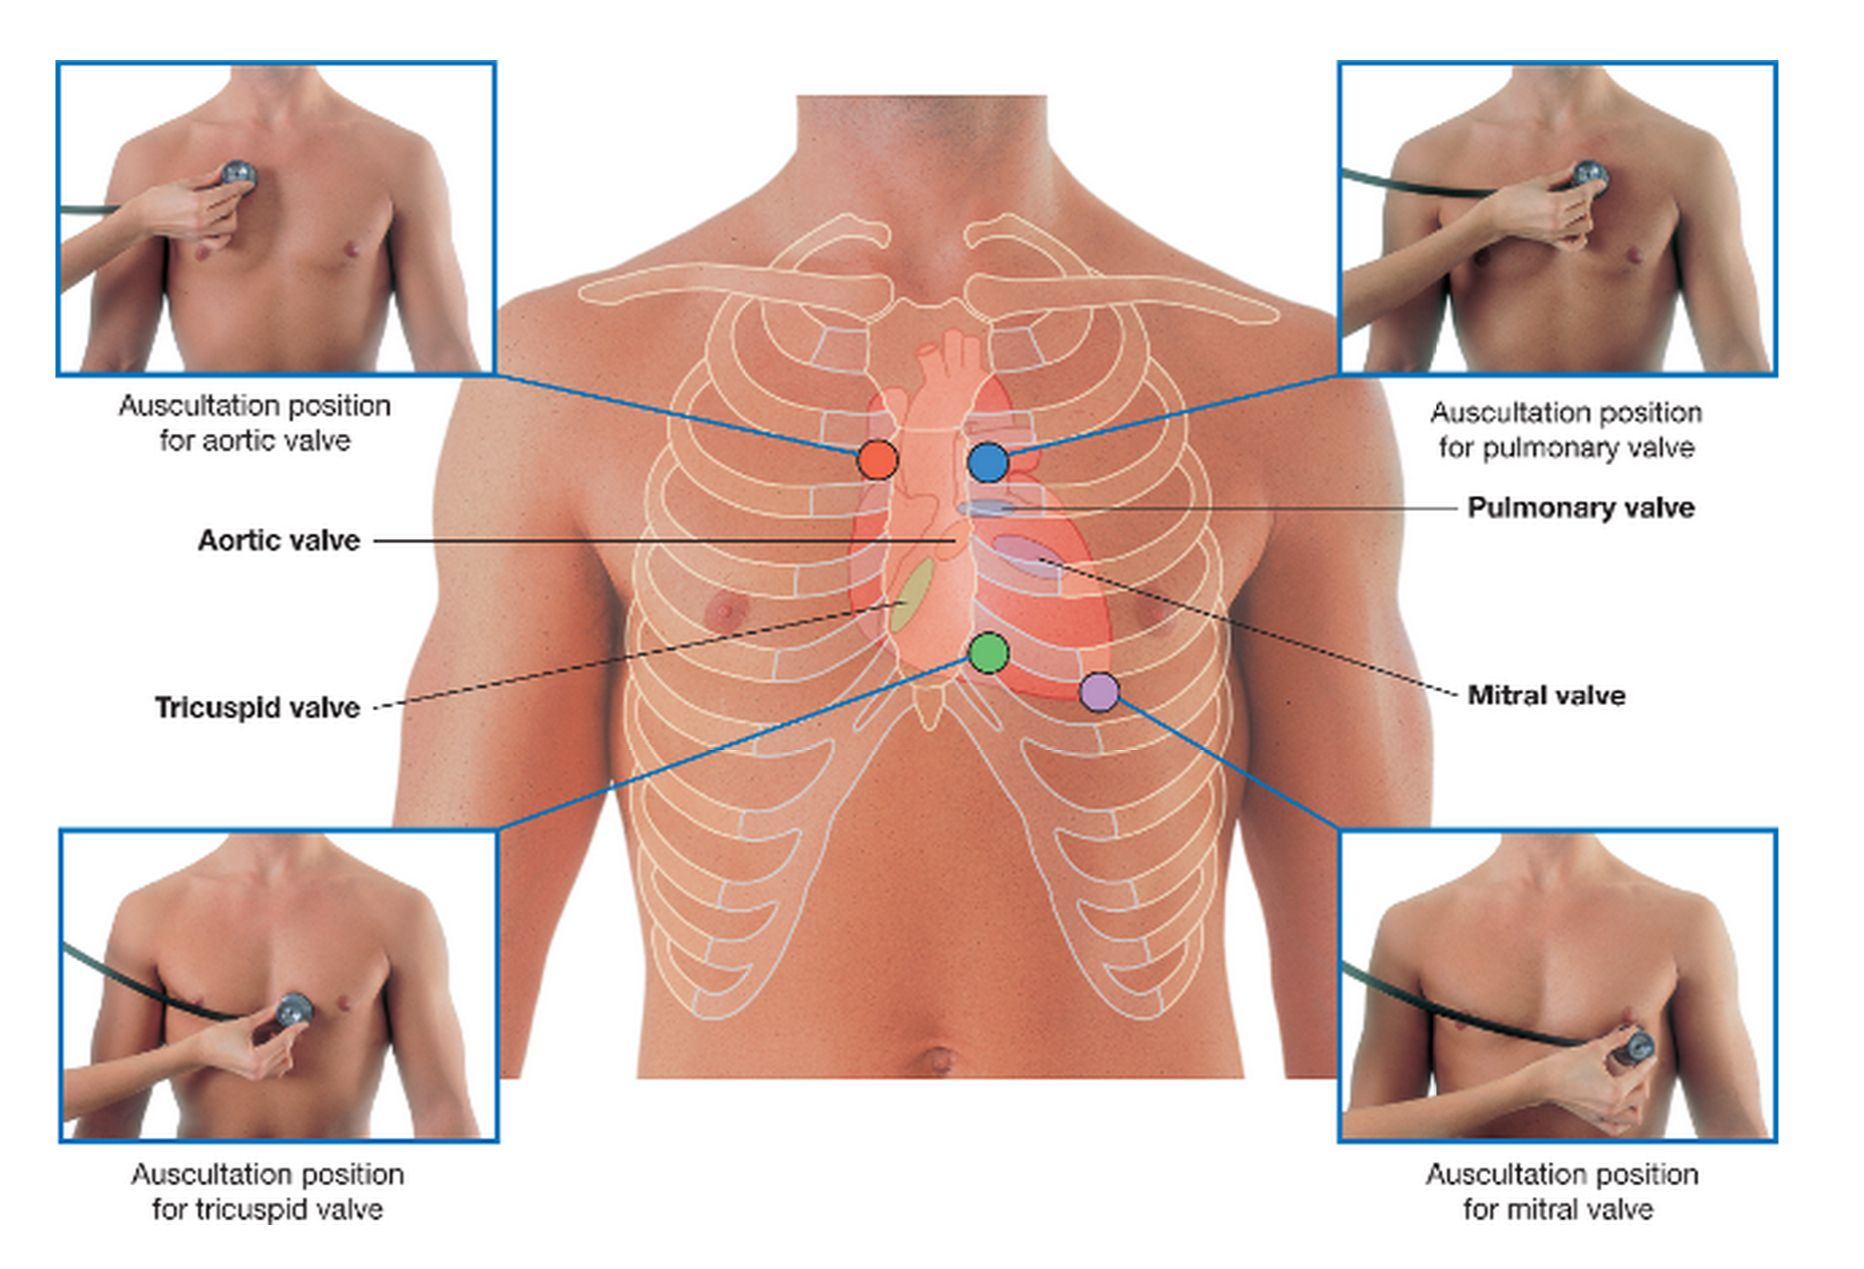 Heart auscultation lung auscultation assessment landmark placement ...